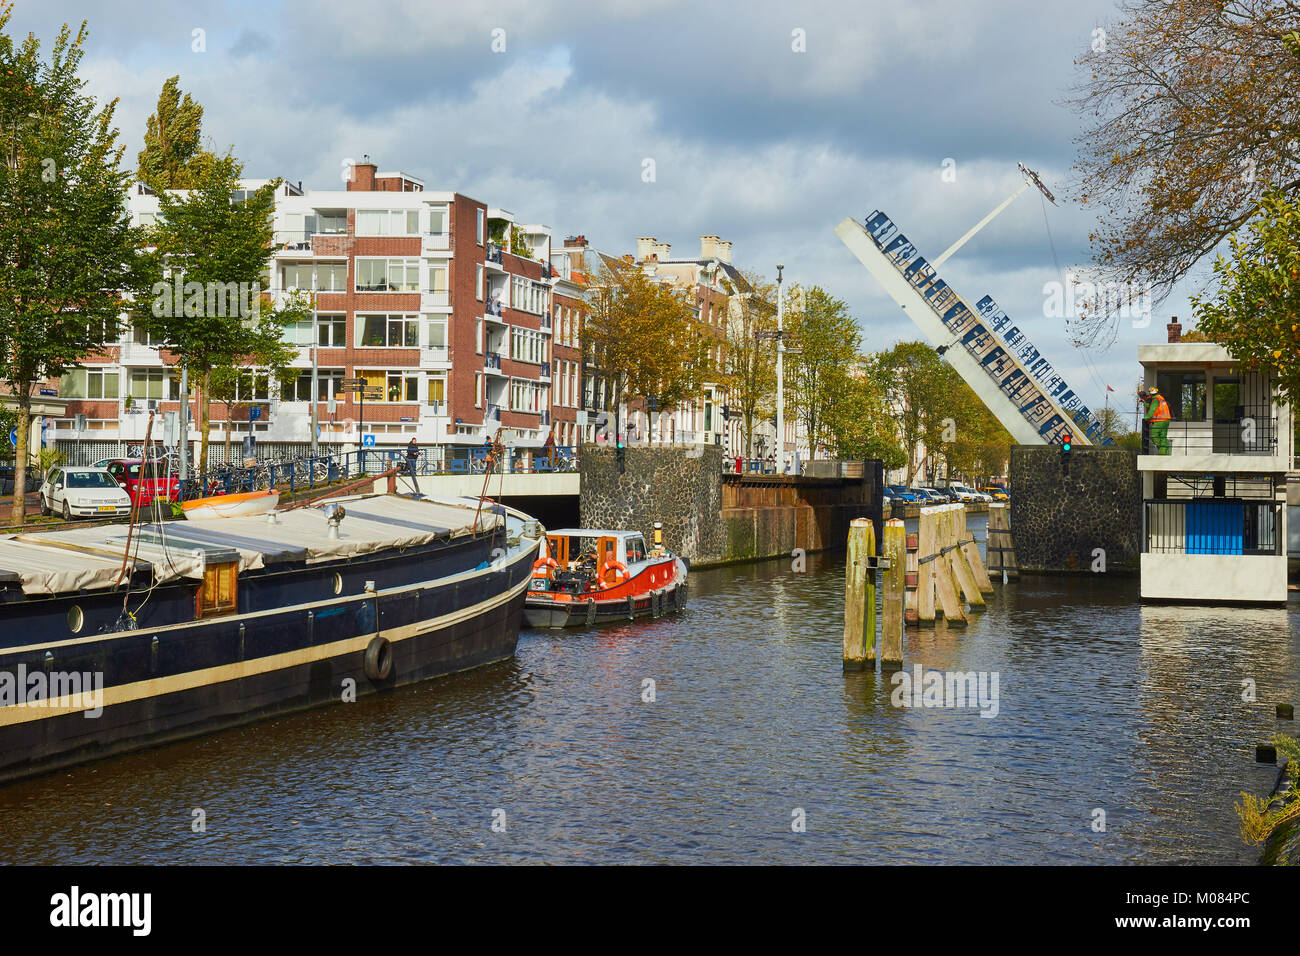 Tug boat guiding a barge through Hortusbrug a bascule bridge across Nieuwe Herengracht canal, Amsterdam, Netherlands - Stock Image